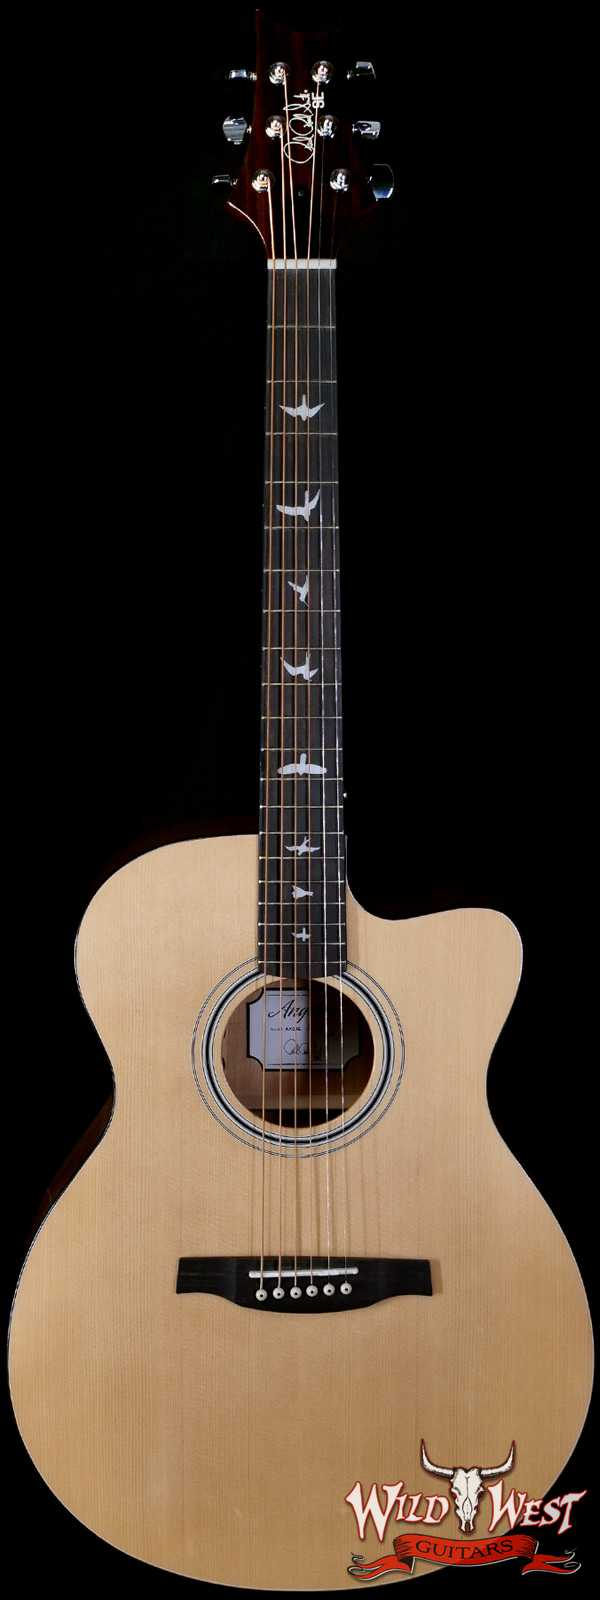 Paul Reed Smith PRS SE AX20E Cutaway Electric-Acoustic Guitar Solid Sitka Spruce Top Mahogany Back & Side